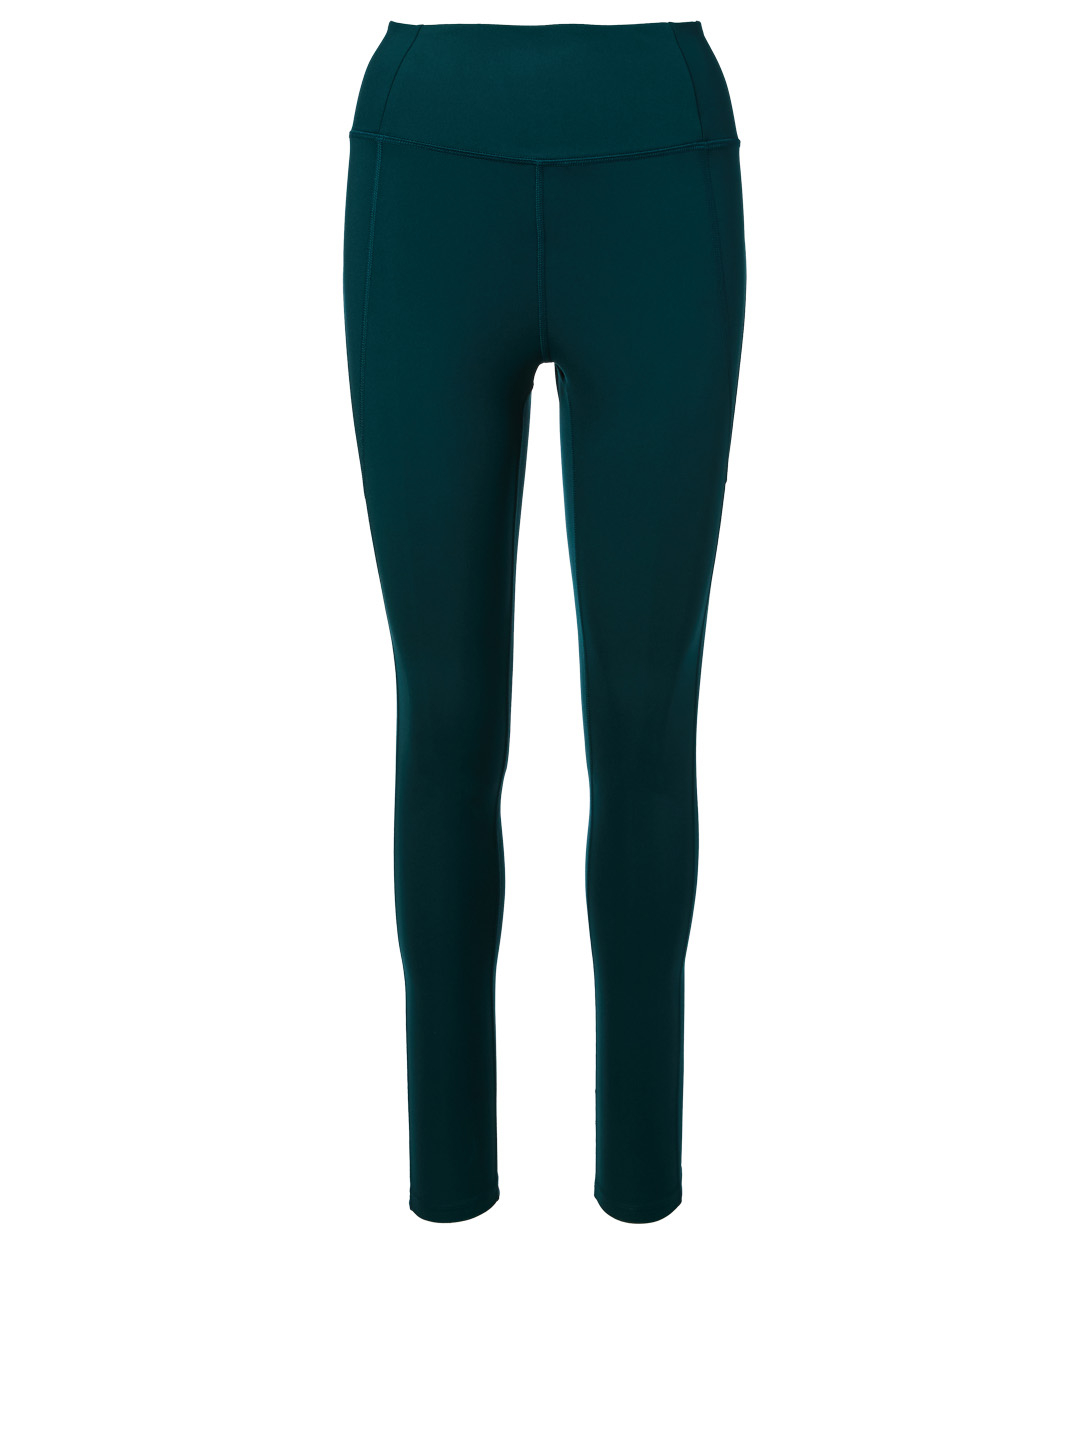 GIRLFRIEND COLLECTIVE Compressive High-Rise Legging H Project Green